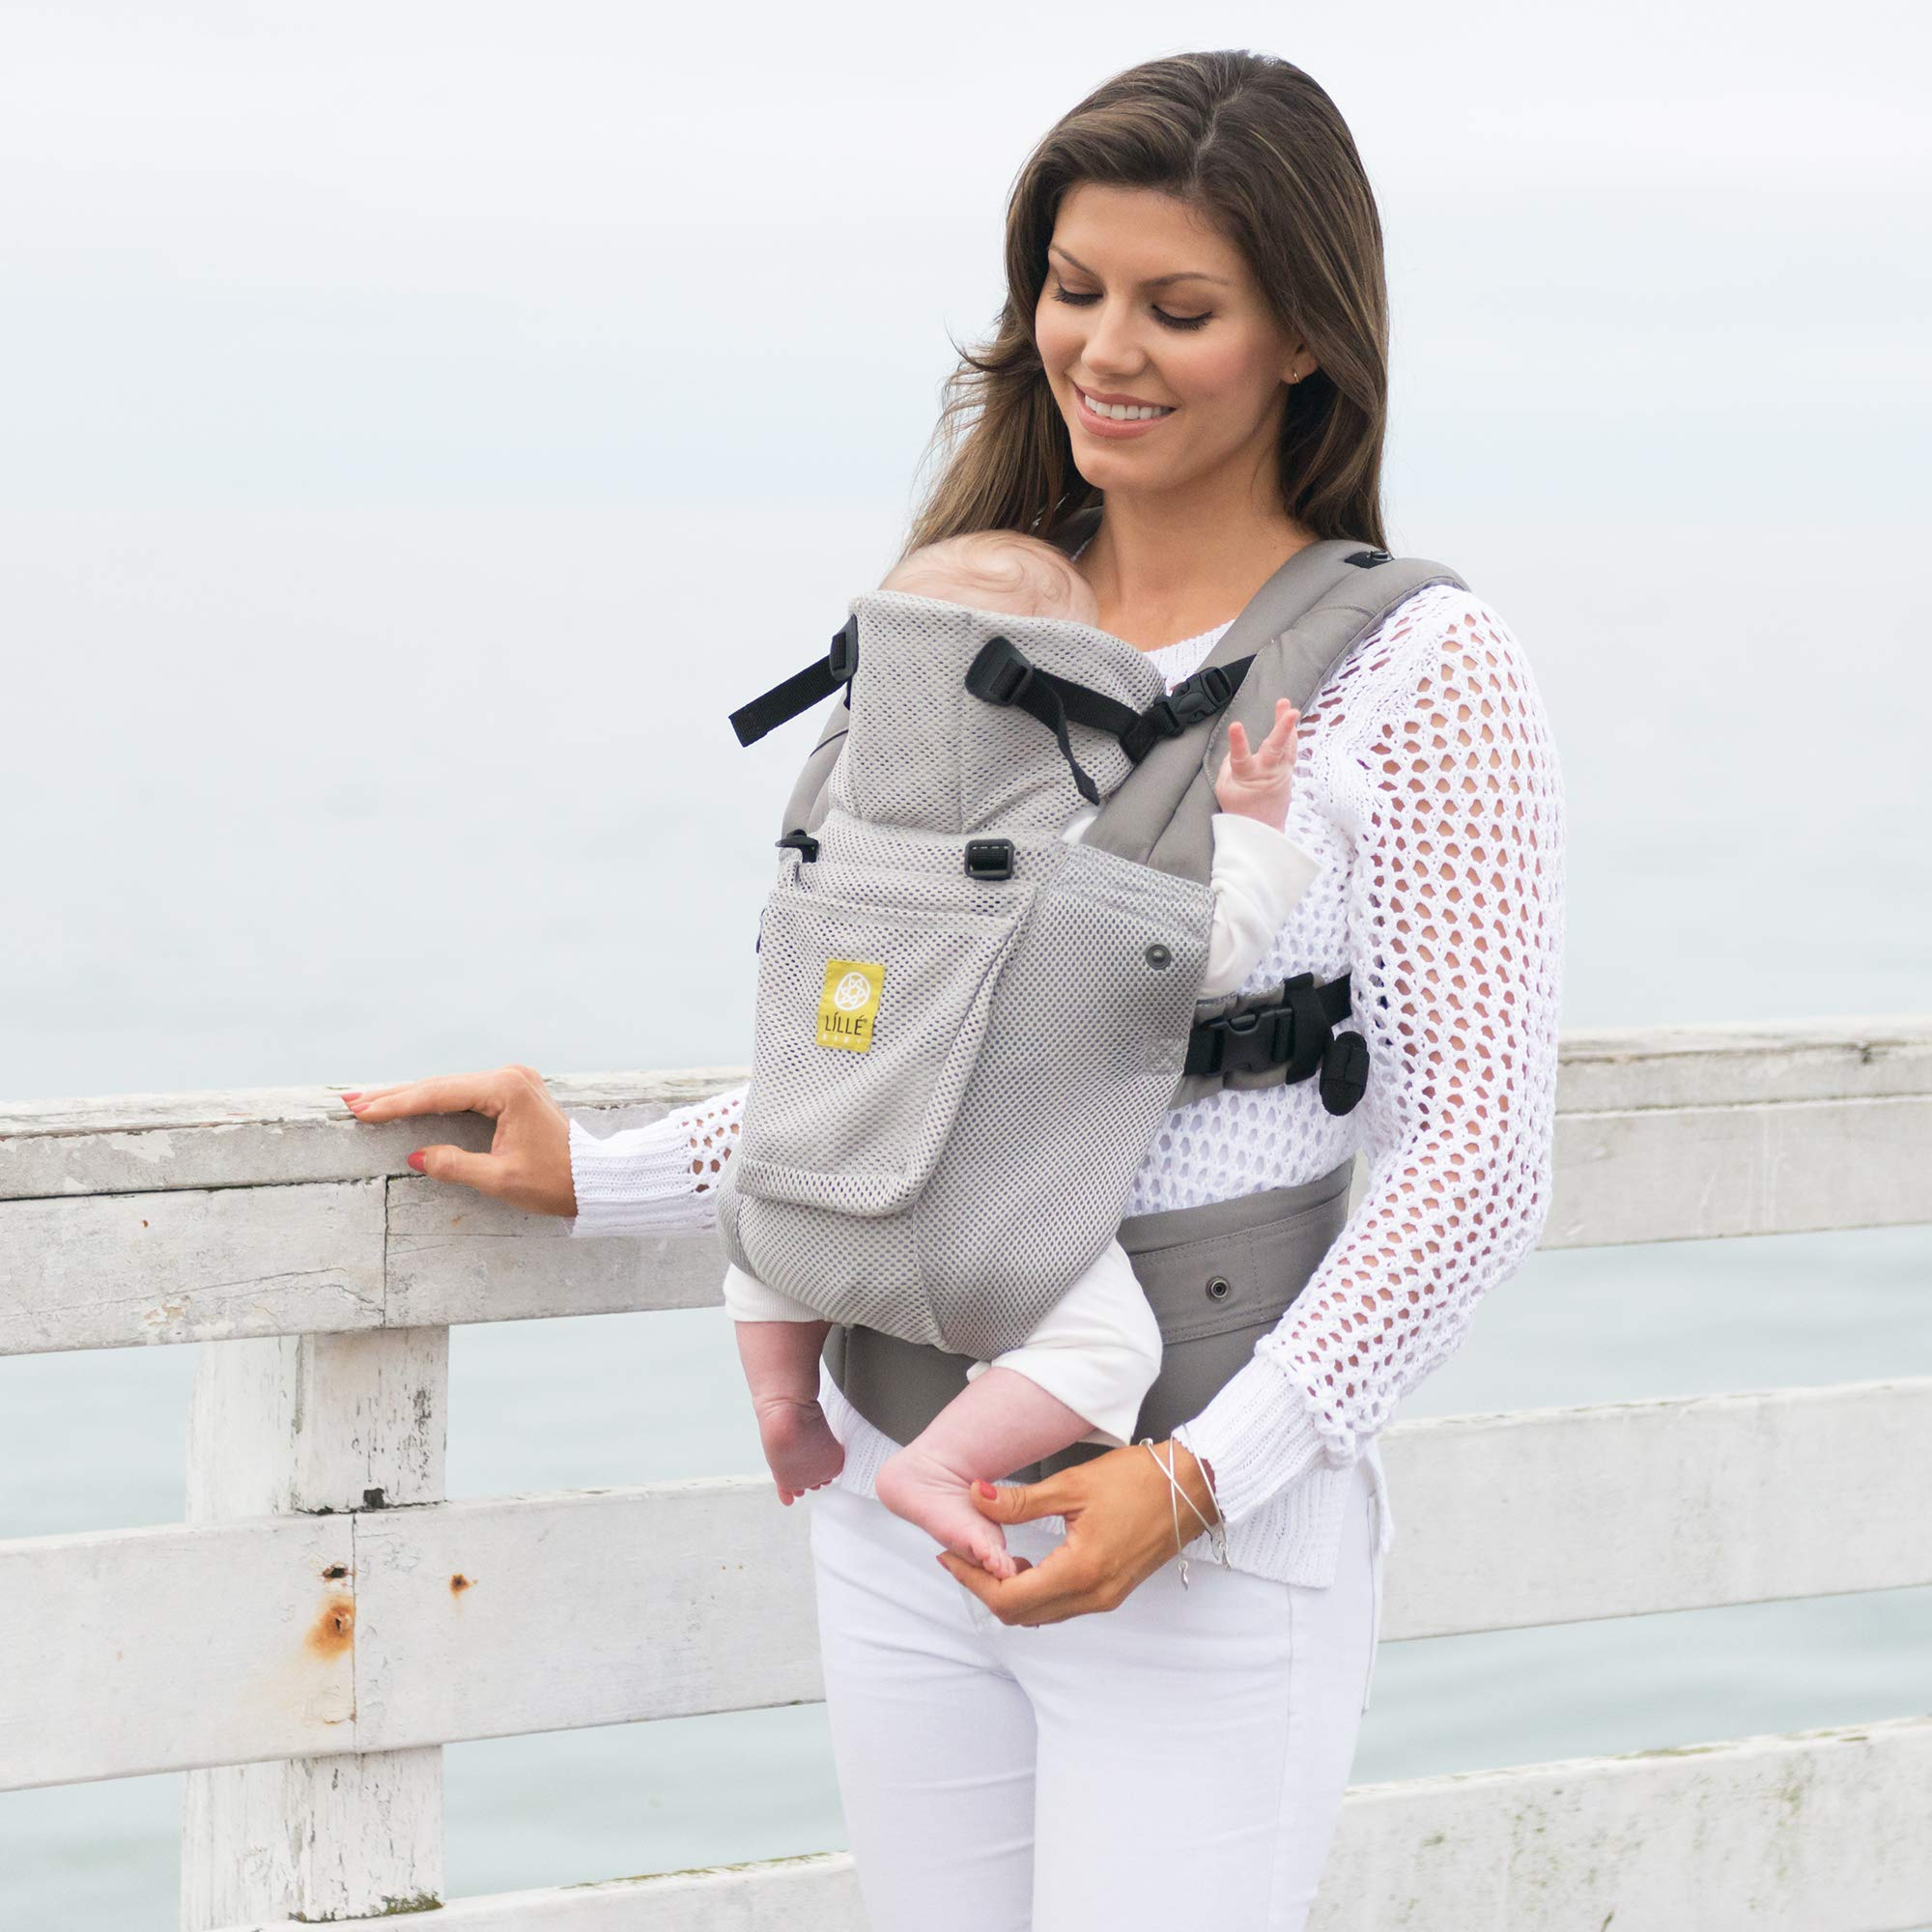 Lillebaby The Complete Airflow 360° Ergonomic Six-Position Baby & Child Carrier, Silver by LILLEbaby (Image #9)